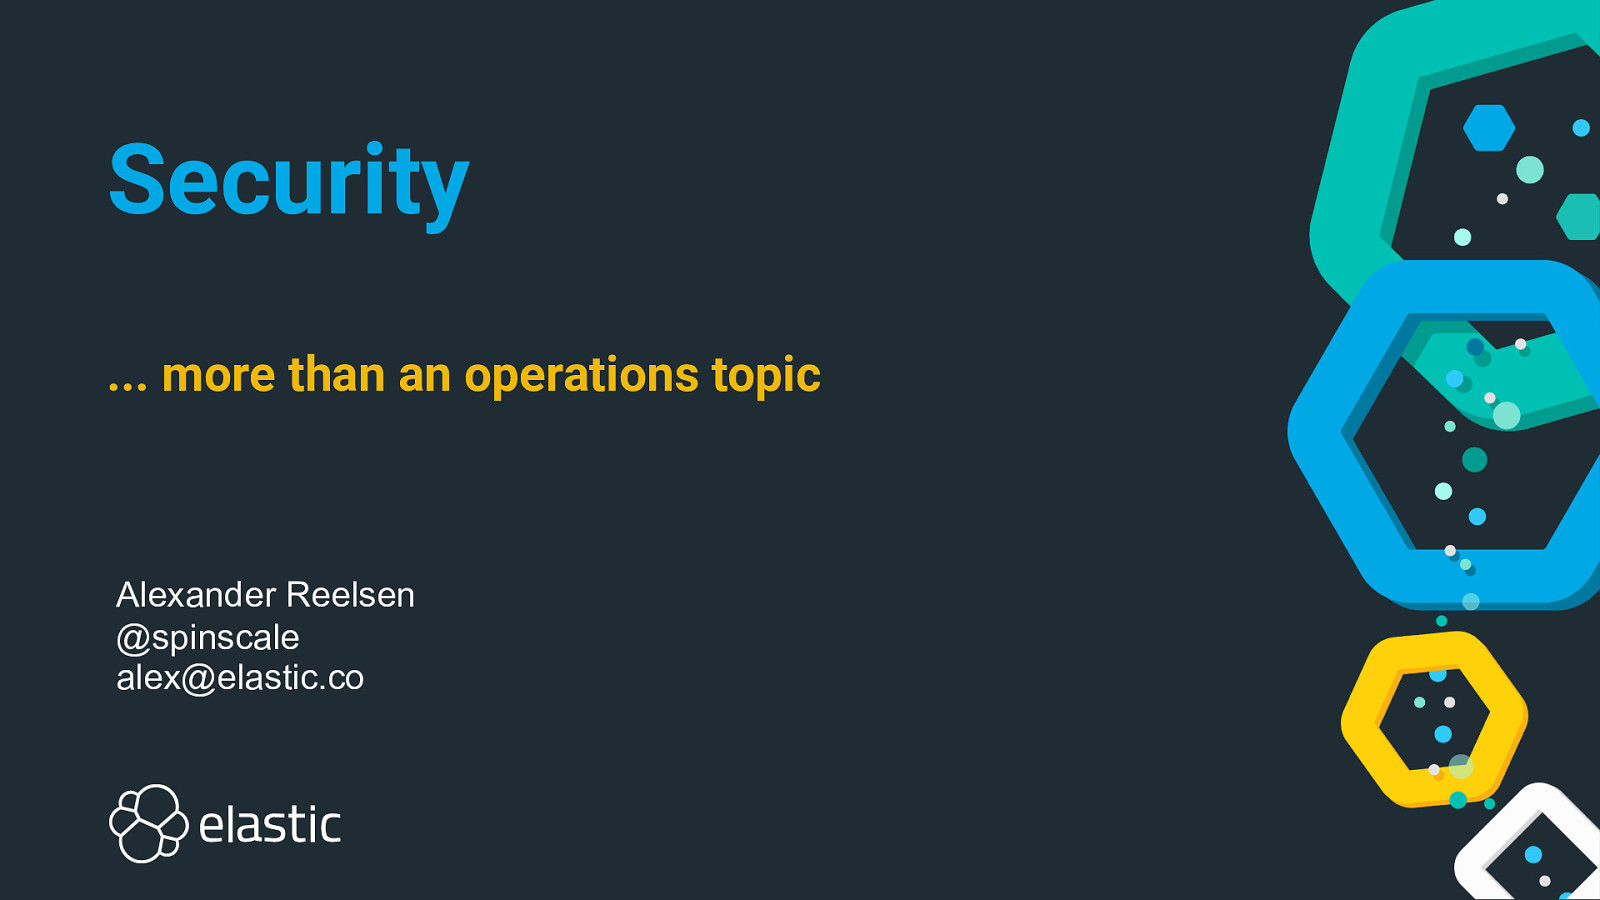 Security - more than an operations topic!